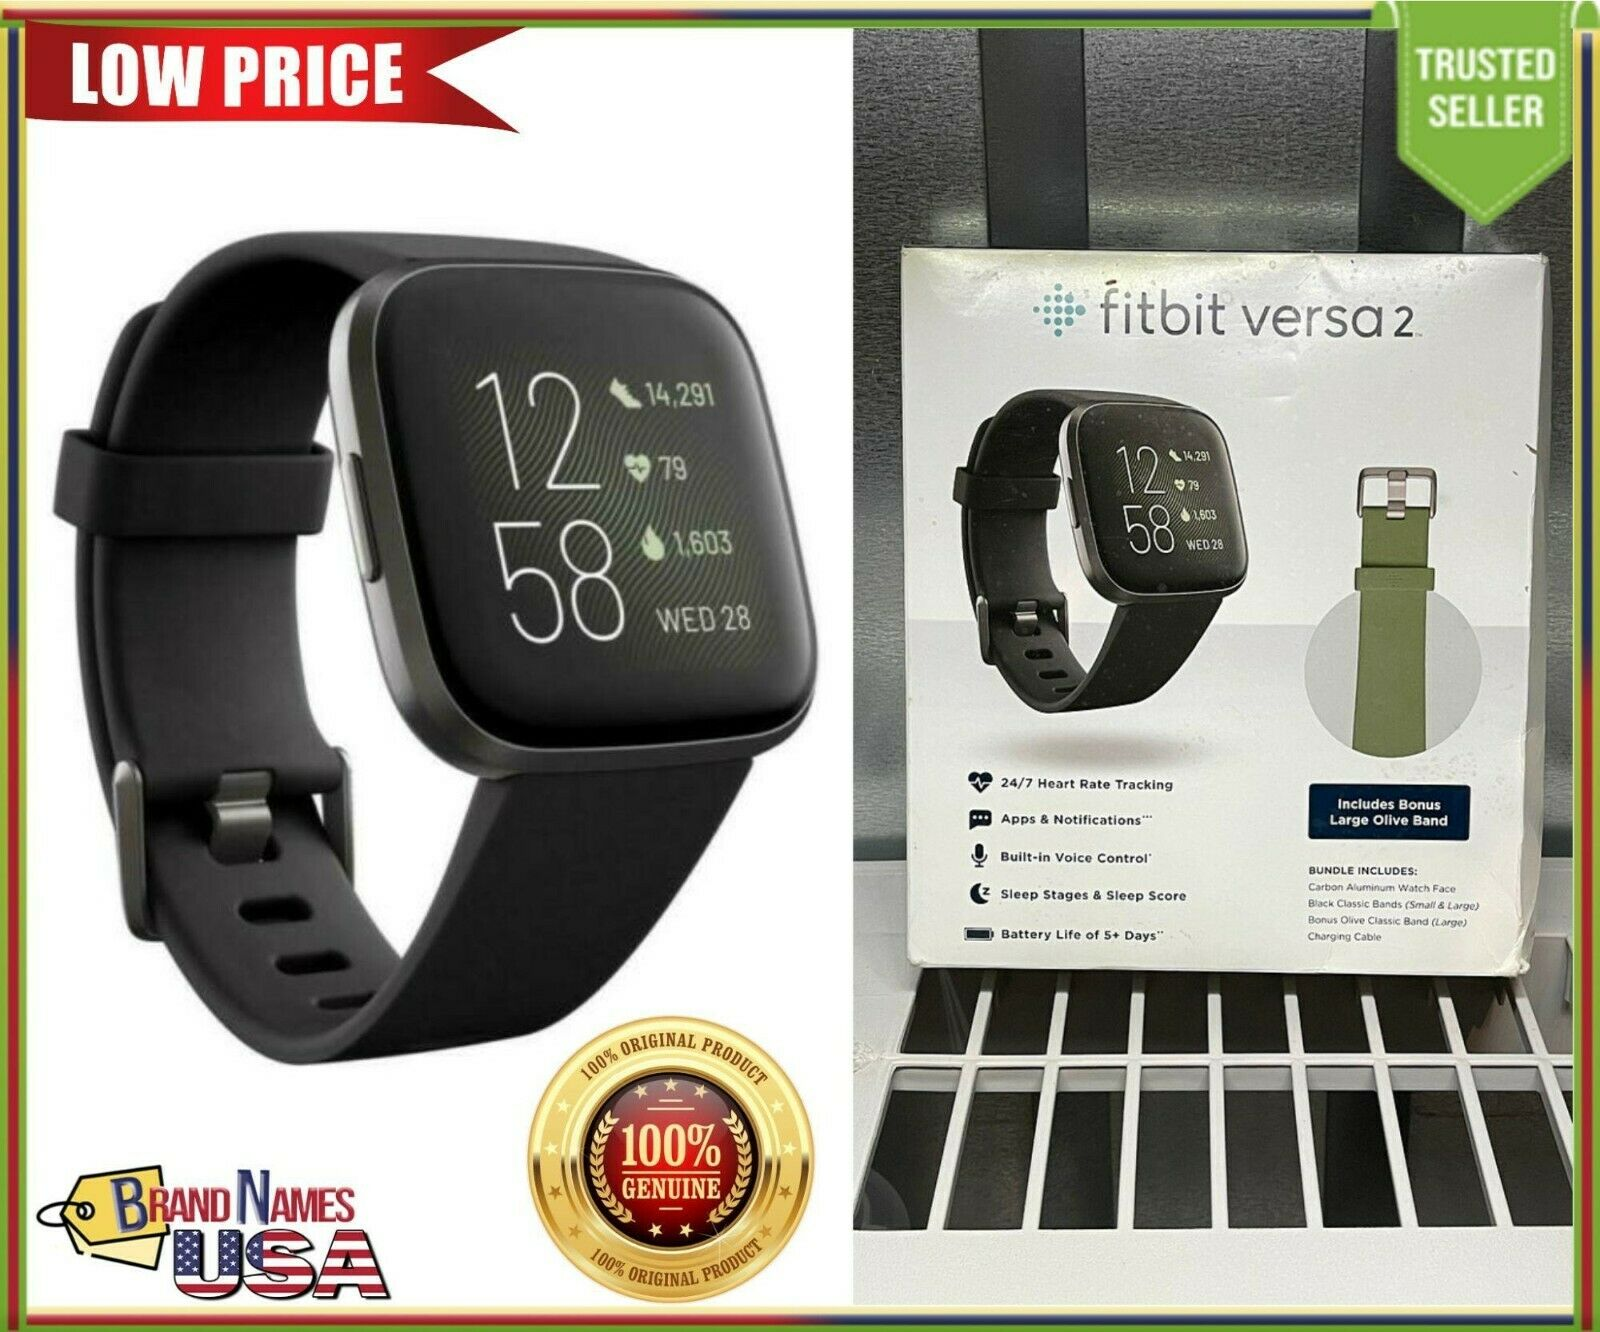 Fitbit Versa 2 Fitness Smartwatch Tracker with Extra Olive Green Band - GENUINE